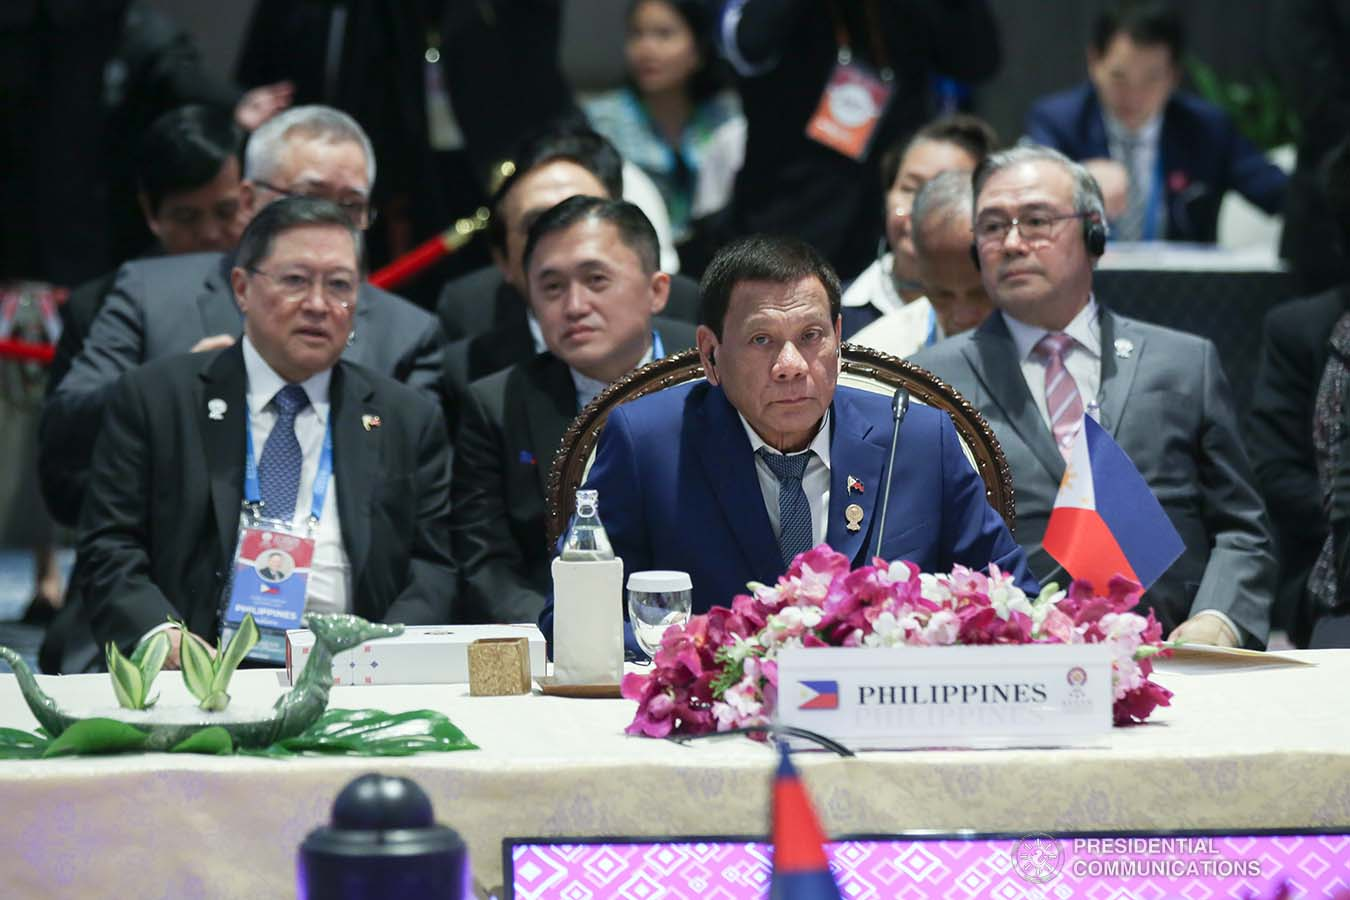 President Rodrigo Roa Duterte joins other leaders from the Association of Southeast Asian Nations (ASEAN) member countries during the 35th ASEAN Summit Plenary at the Bangkok to Impact Exhibition and Convention Center in Nonthaburi, Thailand on November 2, 2019. SIMEON CELI JR./PRESIDENTIAL PHOTO